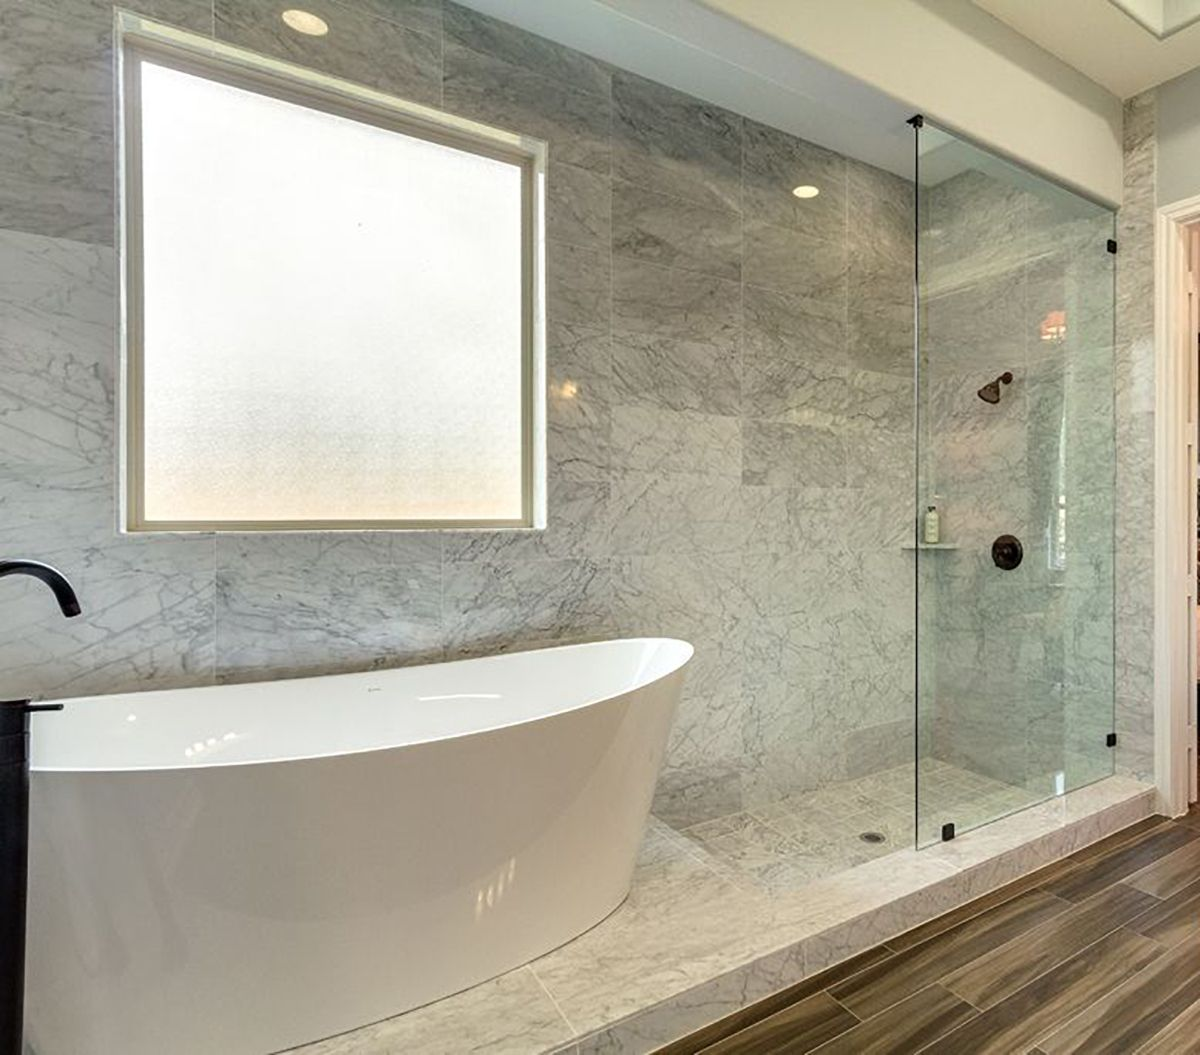 High Quality Master Bathroom Design That Allows Your Freestanding Bathub To Flow  Directly Into A Frameless Shower.